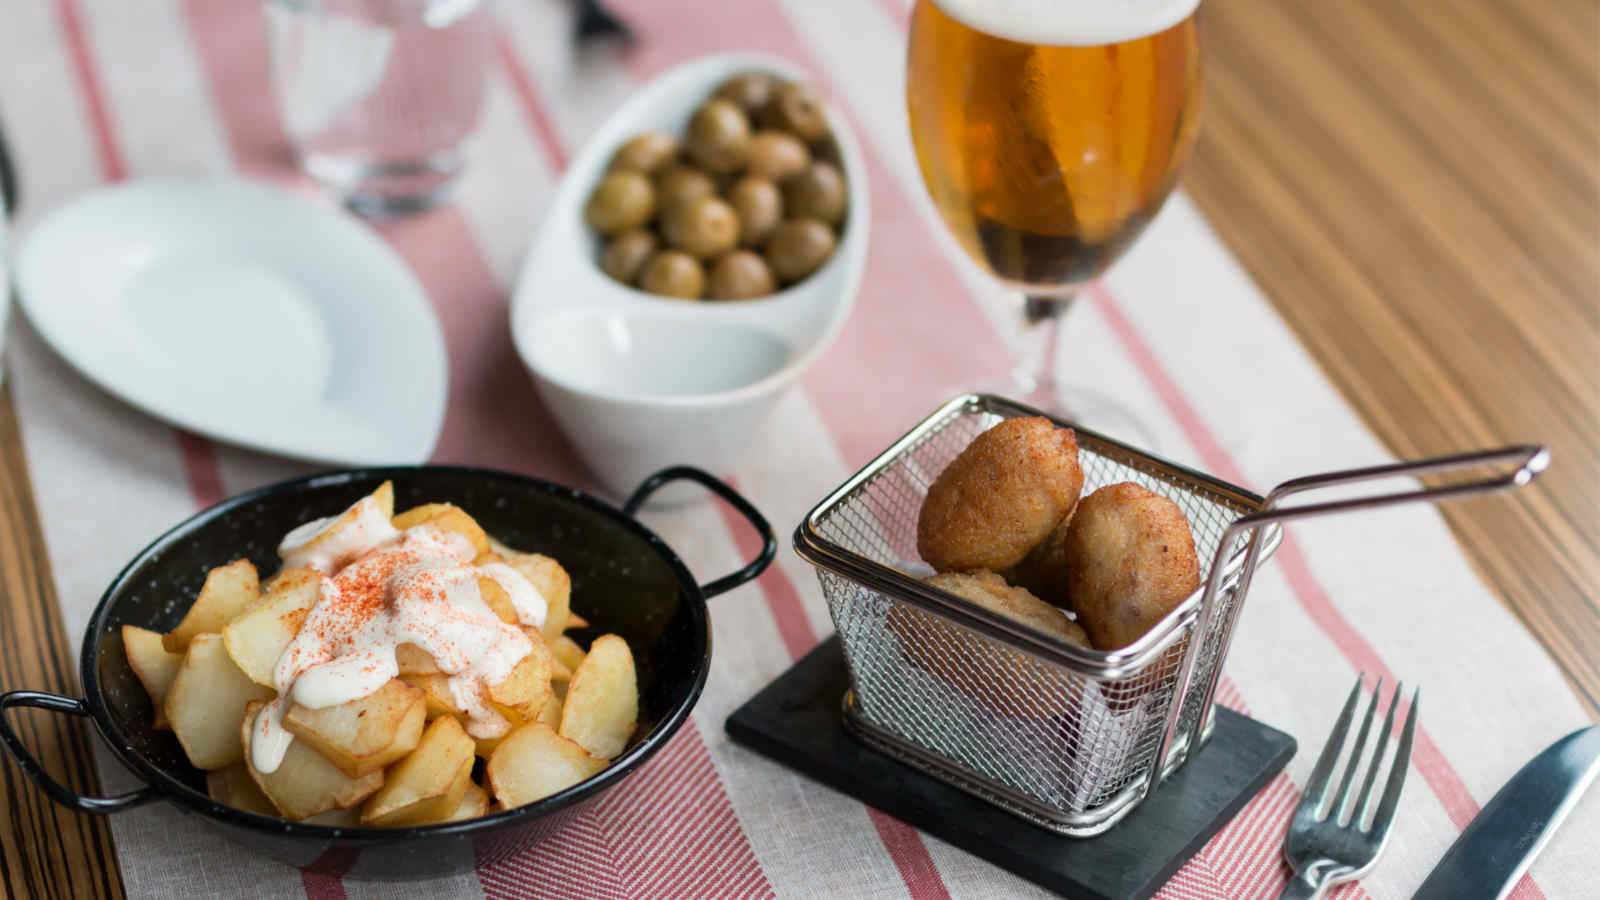 Tapas and free parking at CentOnze Restaurant